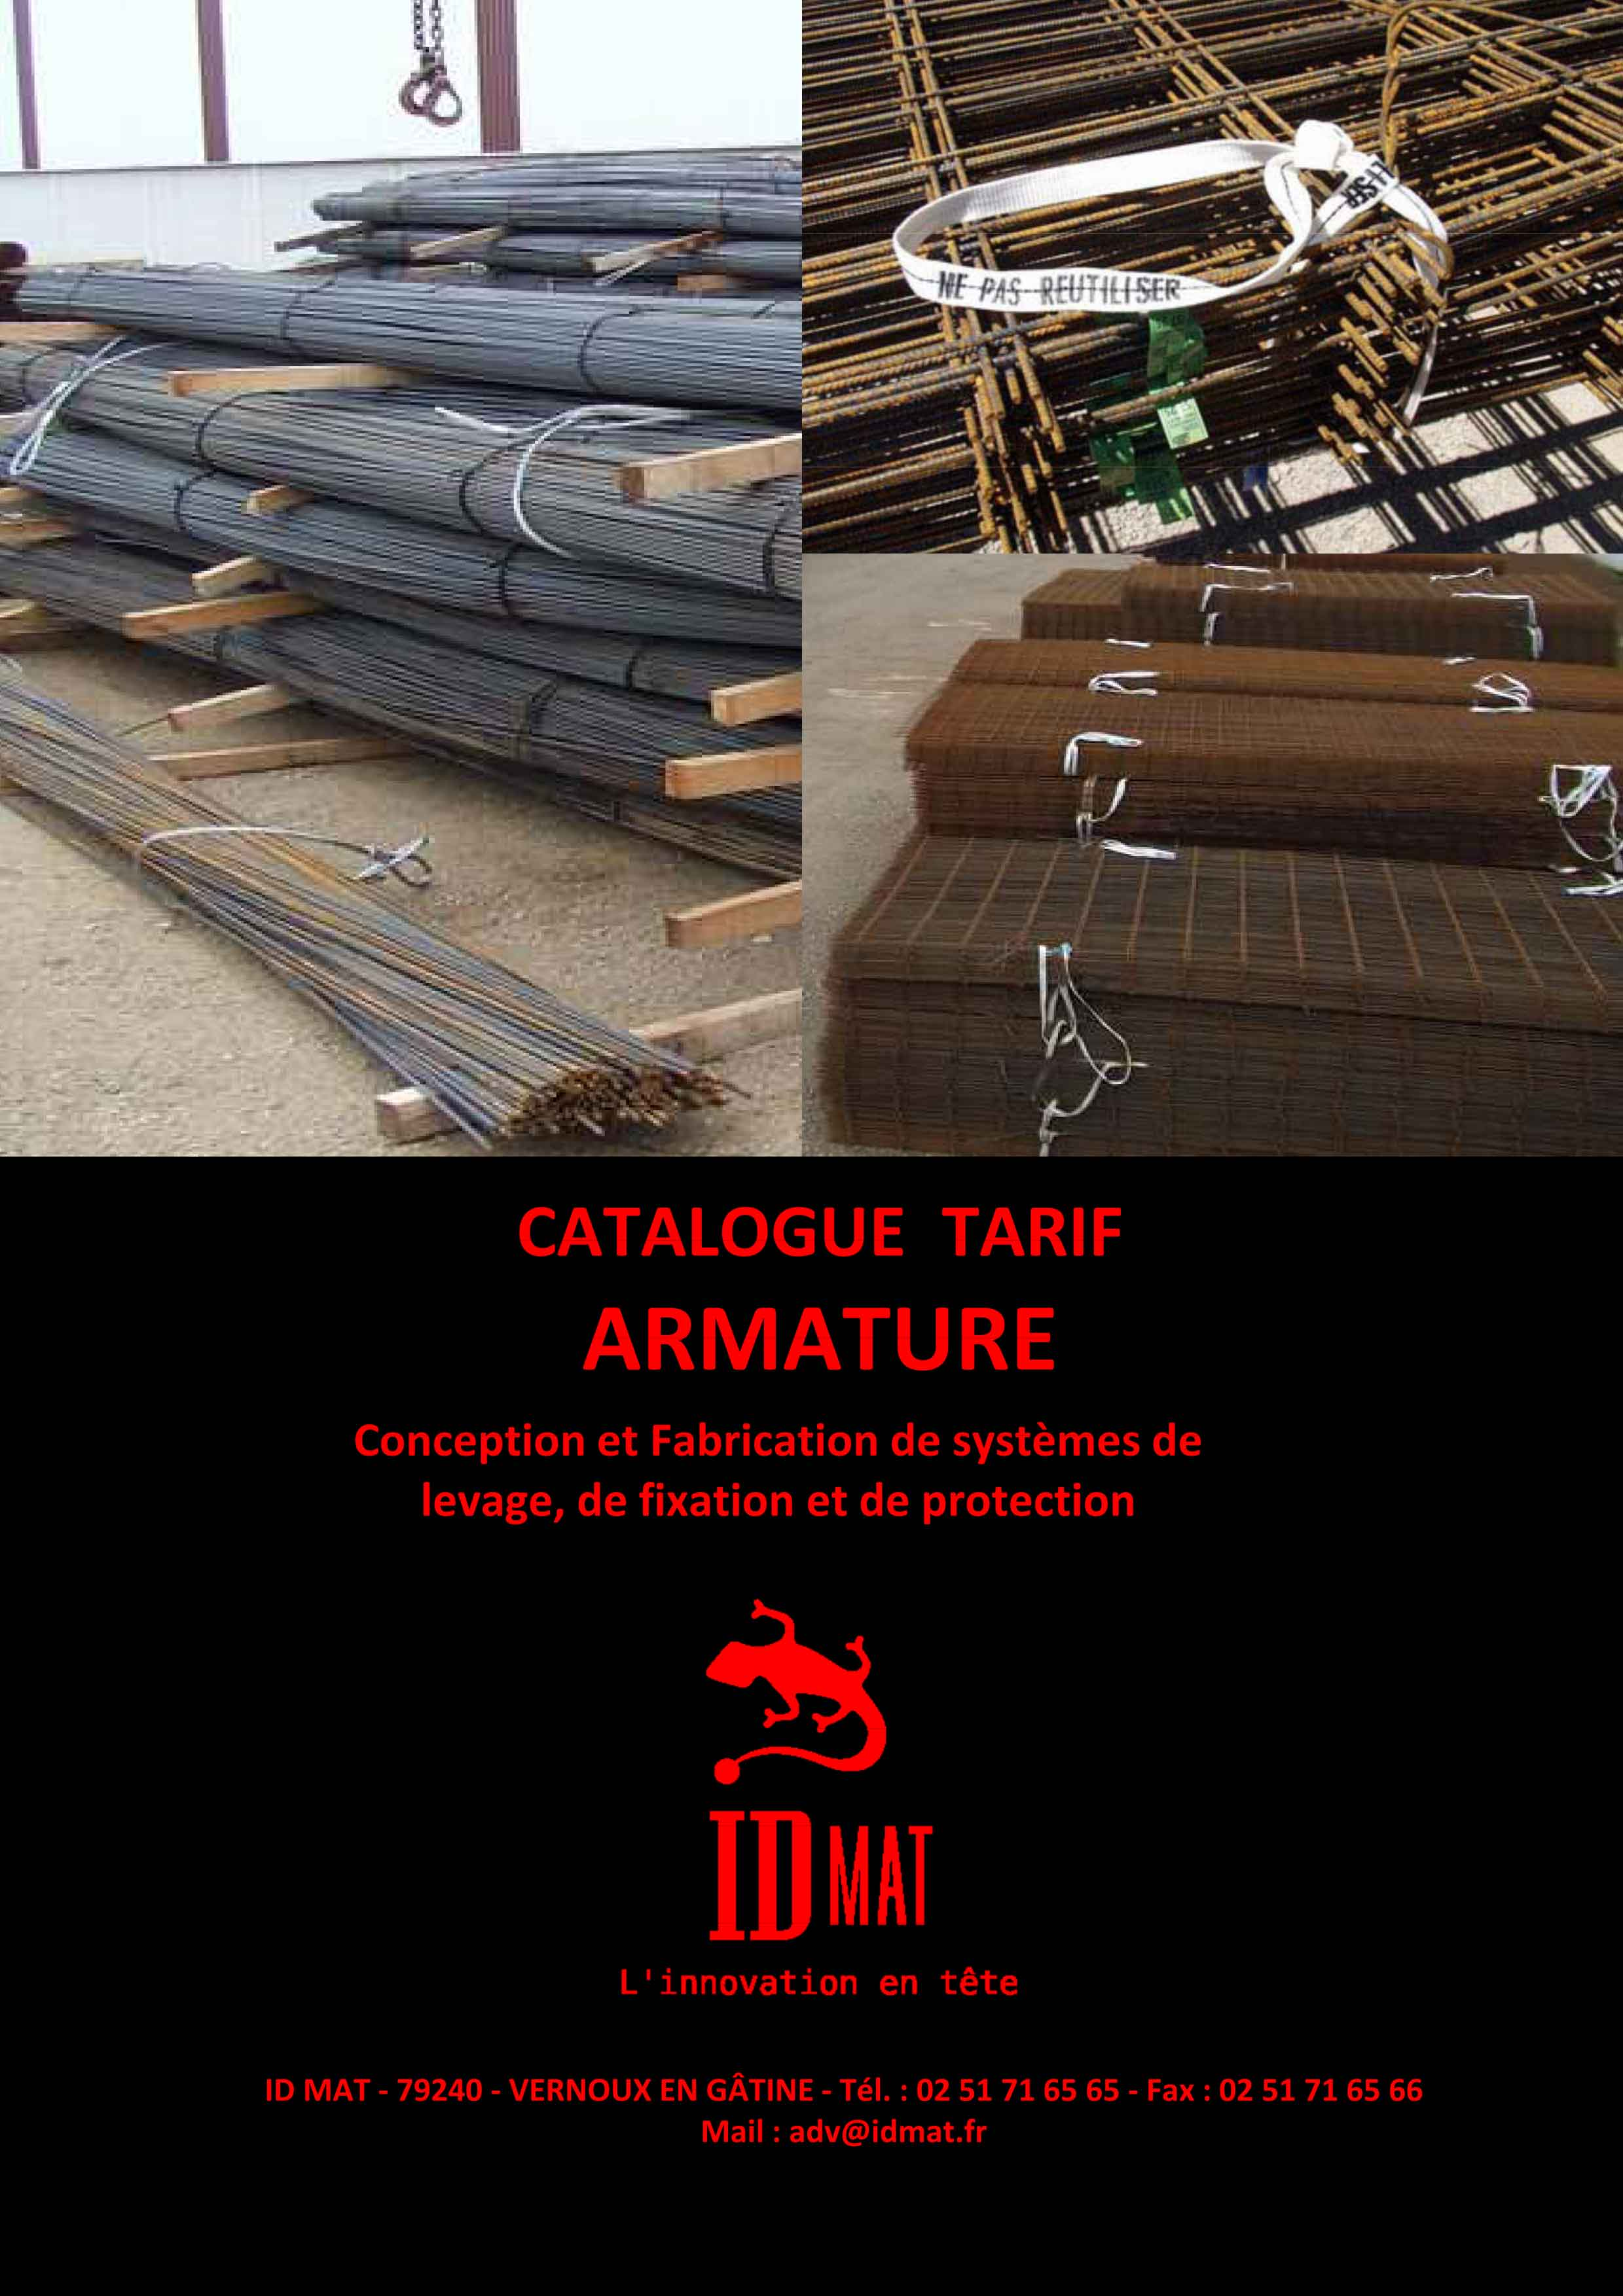 PAGE-DE-GARDE-Catalogue-Armature-Idmat-Levage-Manutention